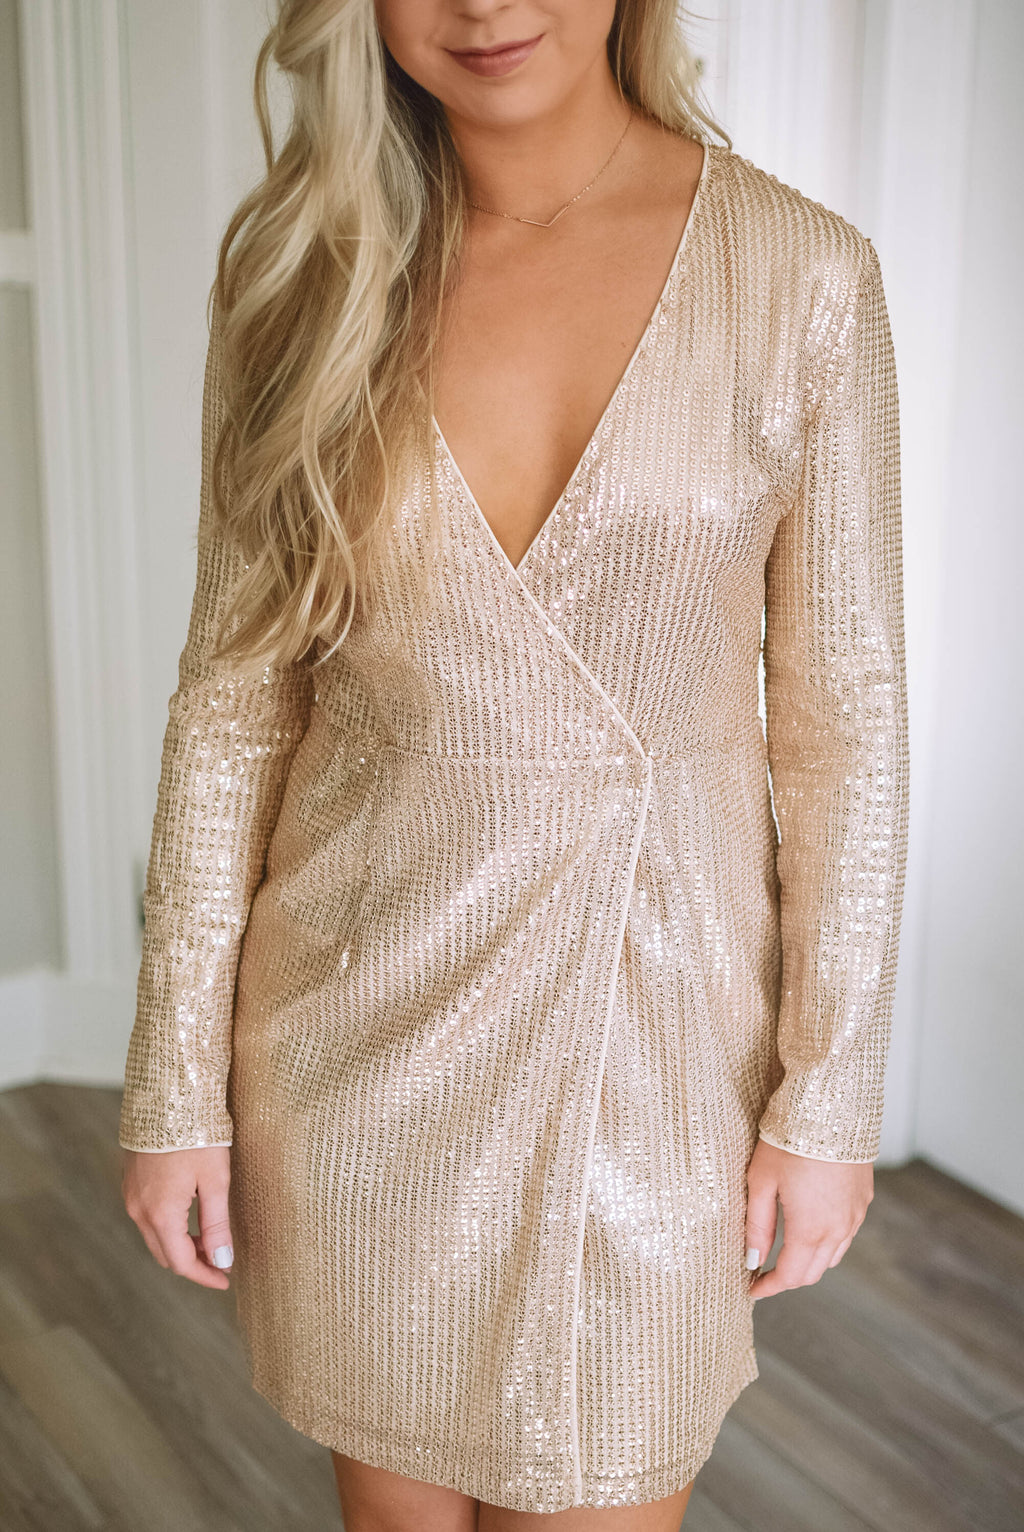 Gold Sequin Wrap Dress - Mint Pop Shop